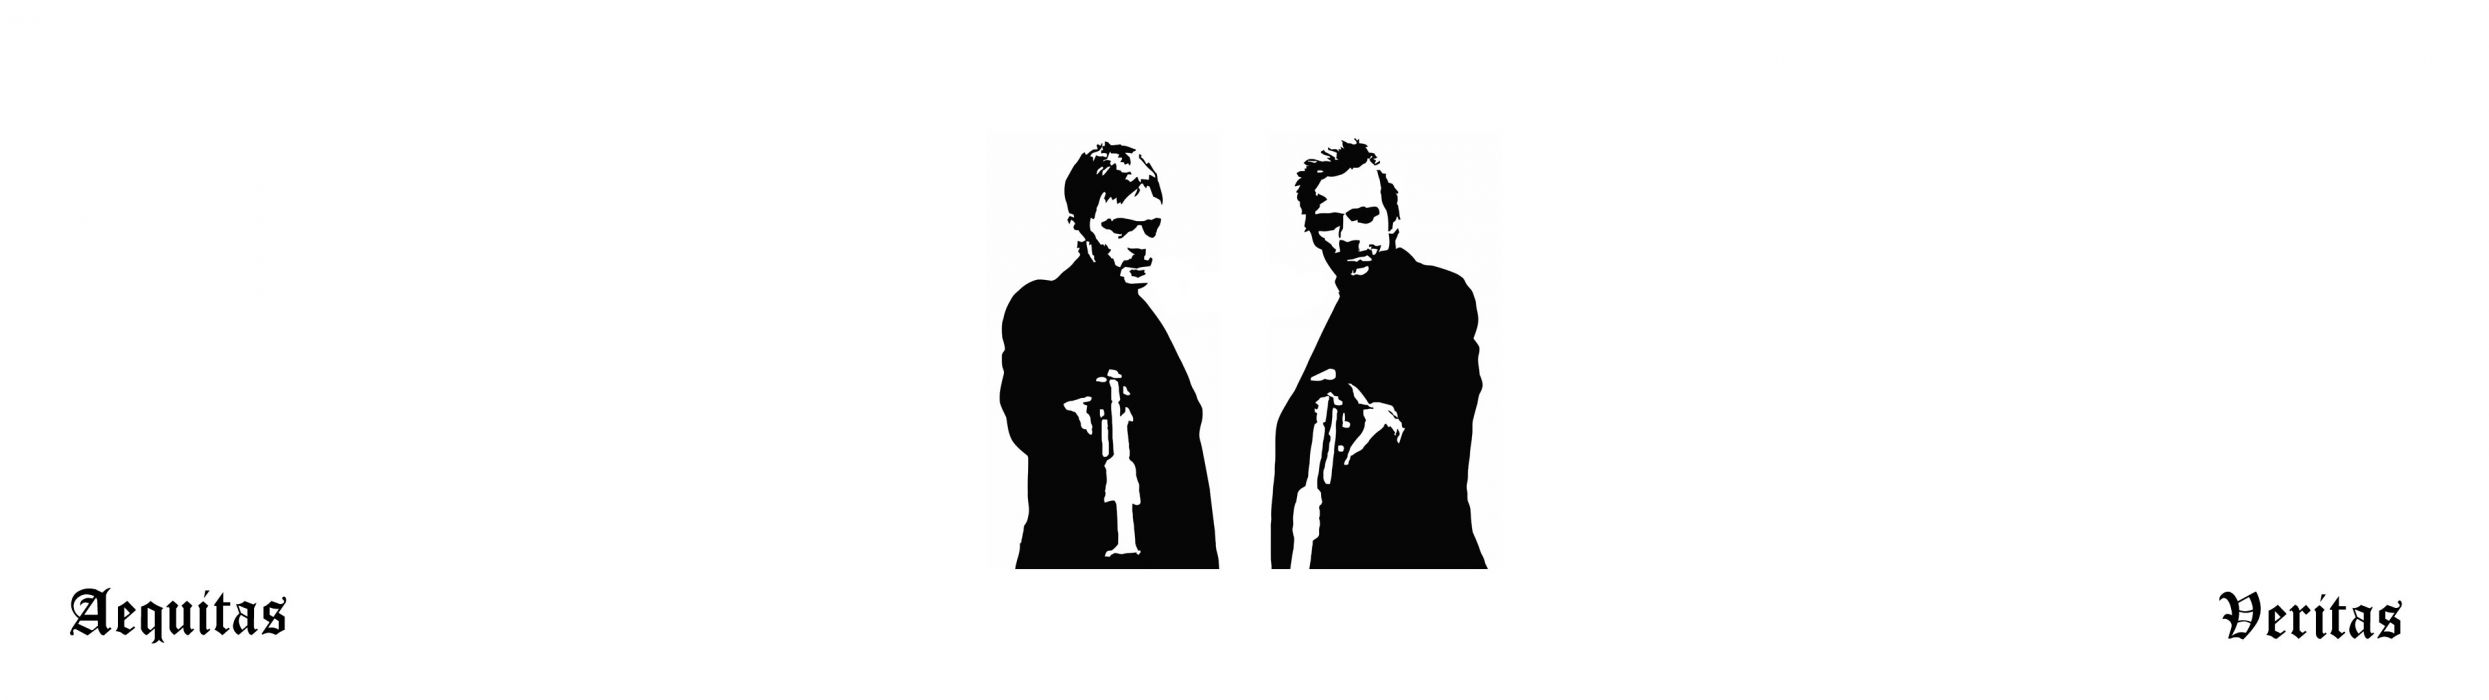 2489x700 BOONDOCK SAINTS action crime thriller weapon gun pistol wallpaper ...